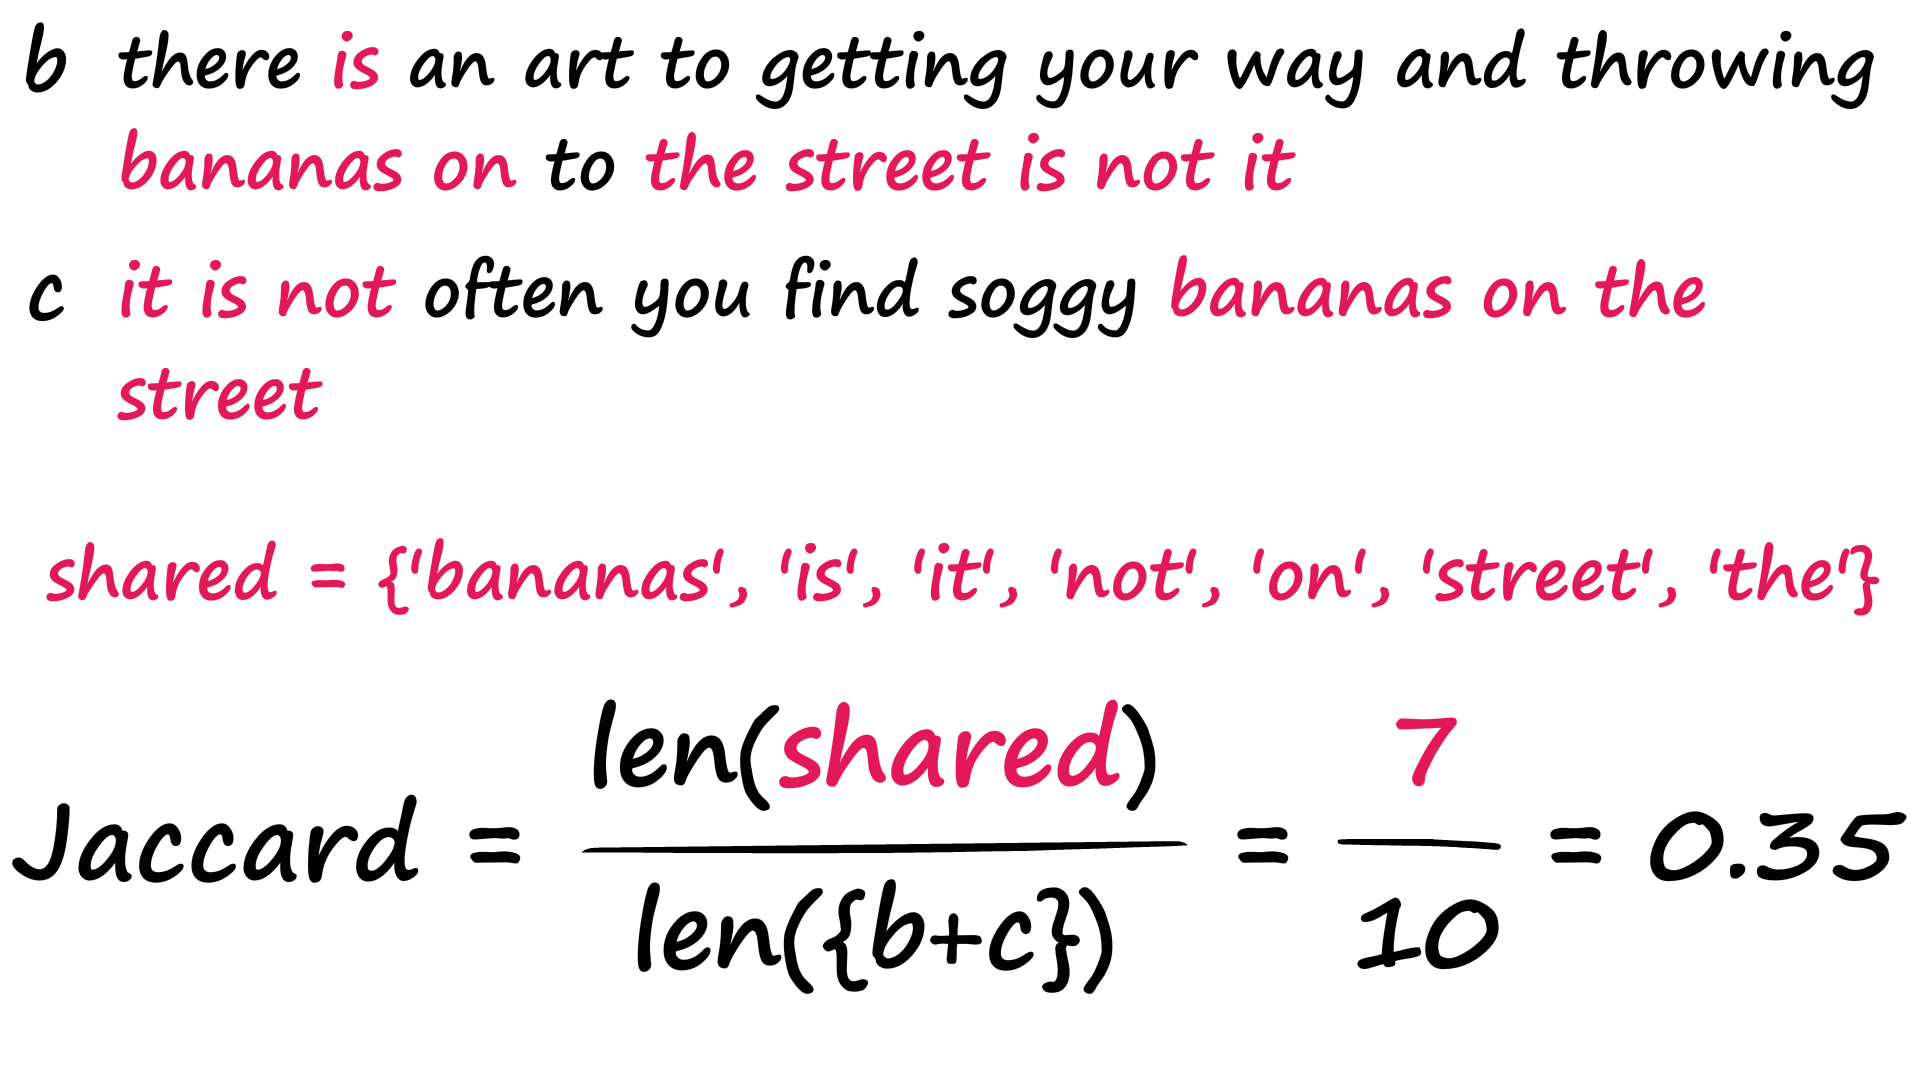 Jaccard similarity calculated between two sentences a and b.